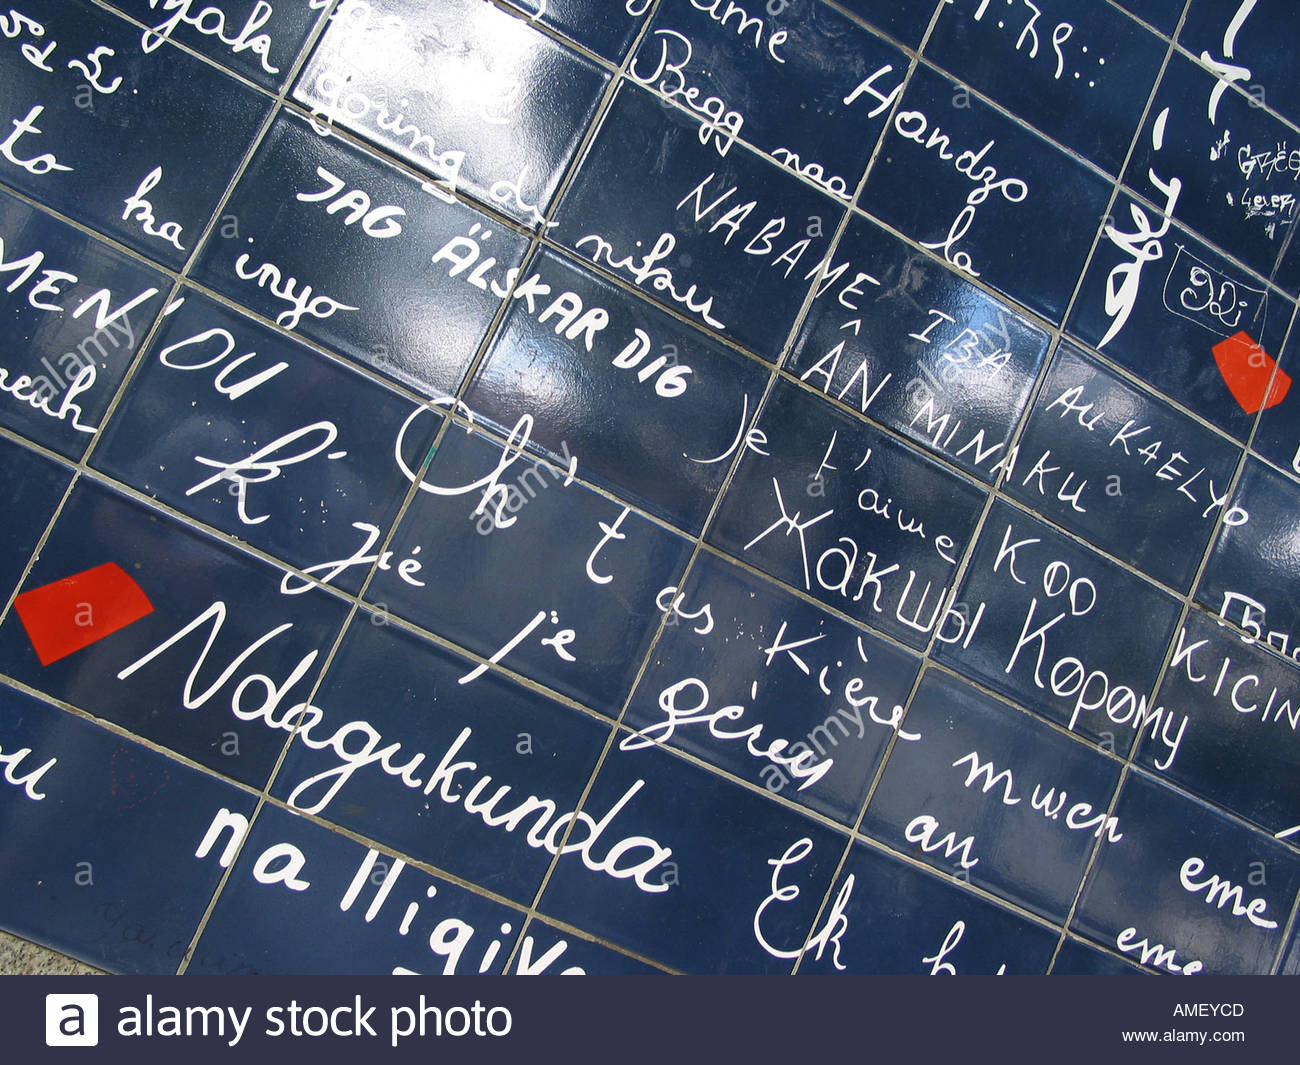 detail of Le Mur Bleu, wall of I love you's Paris France - Stock Image